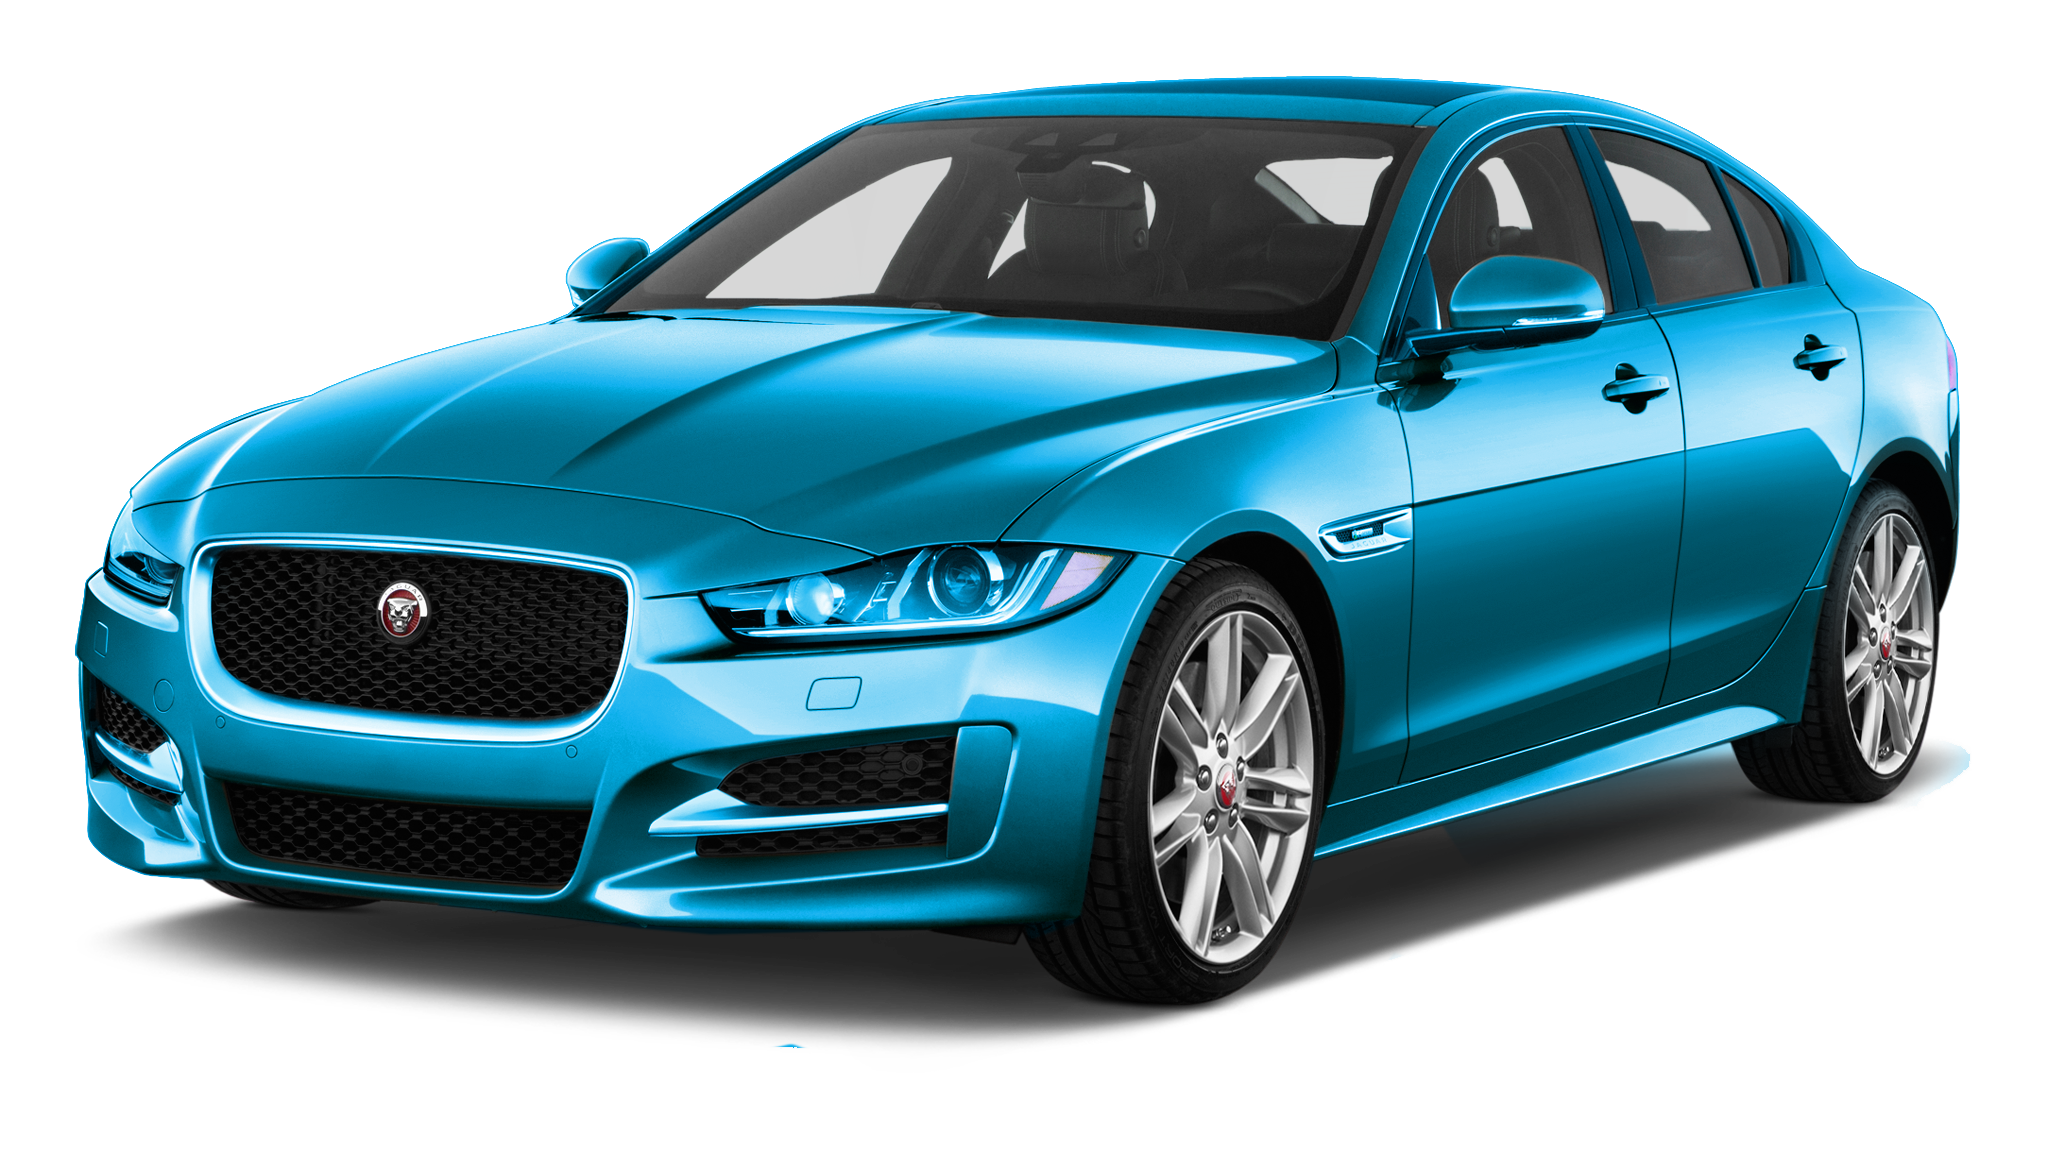 lineup of new near lake luxury dealership car online cheap naperville parts bluff used jaguar